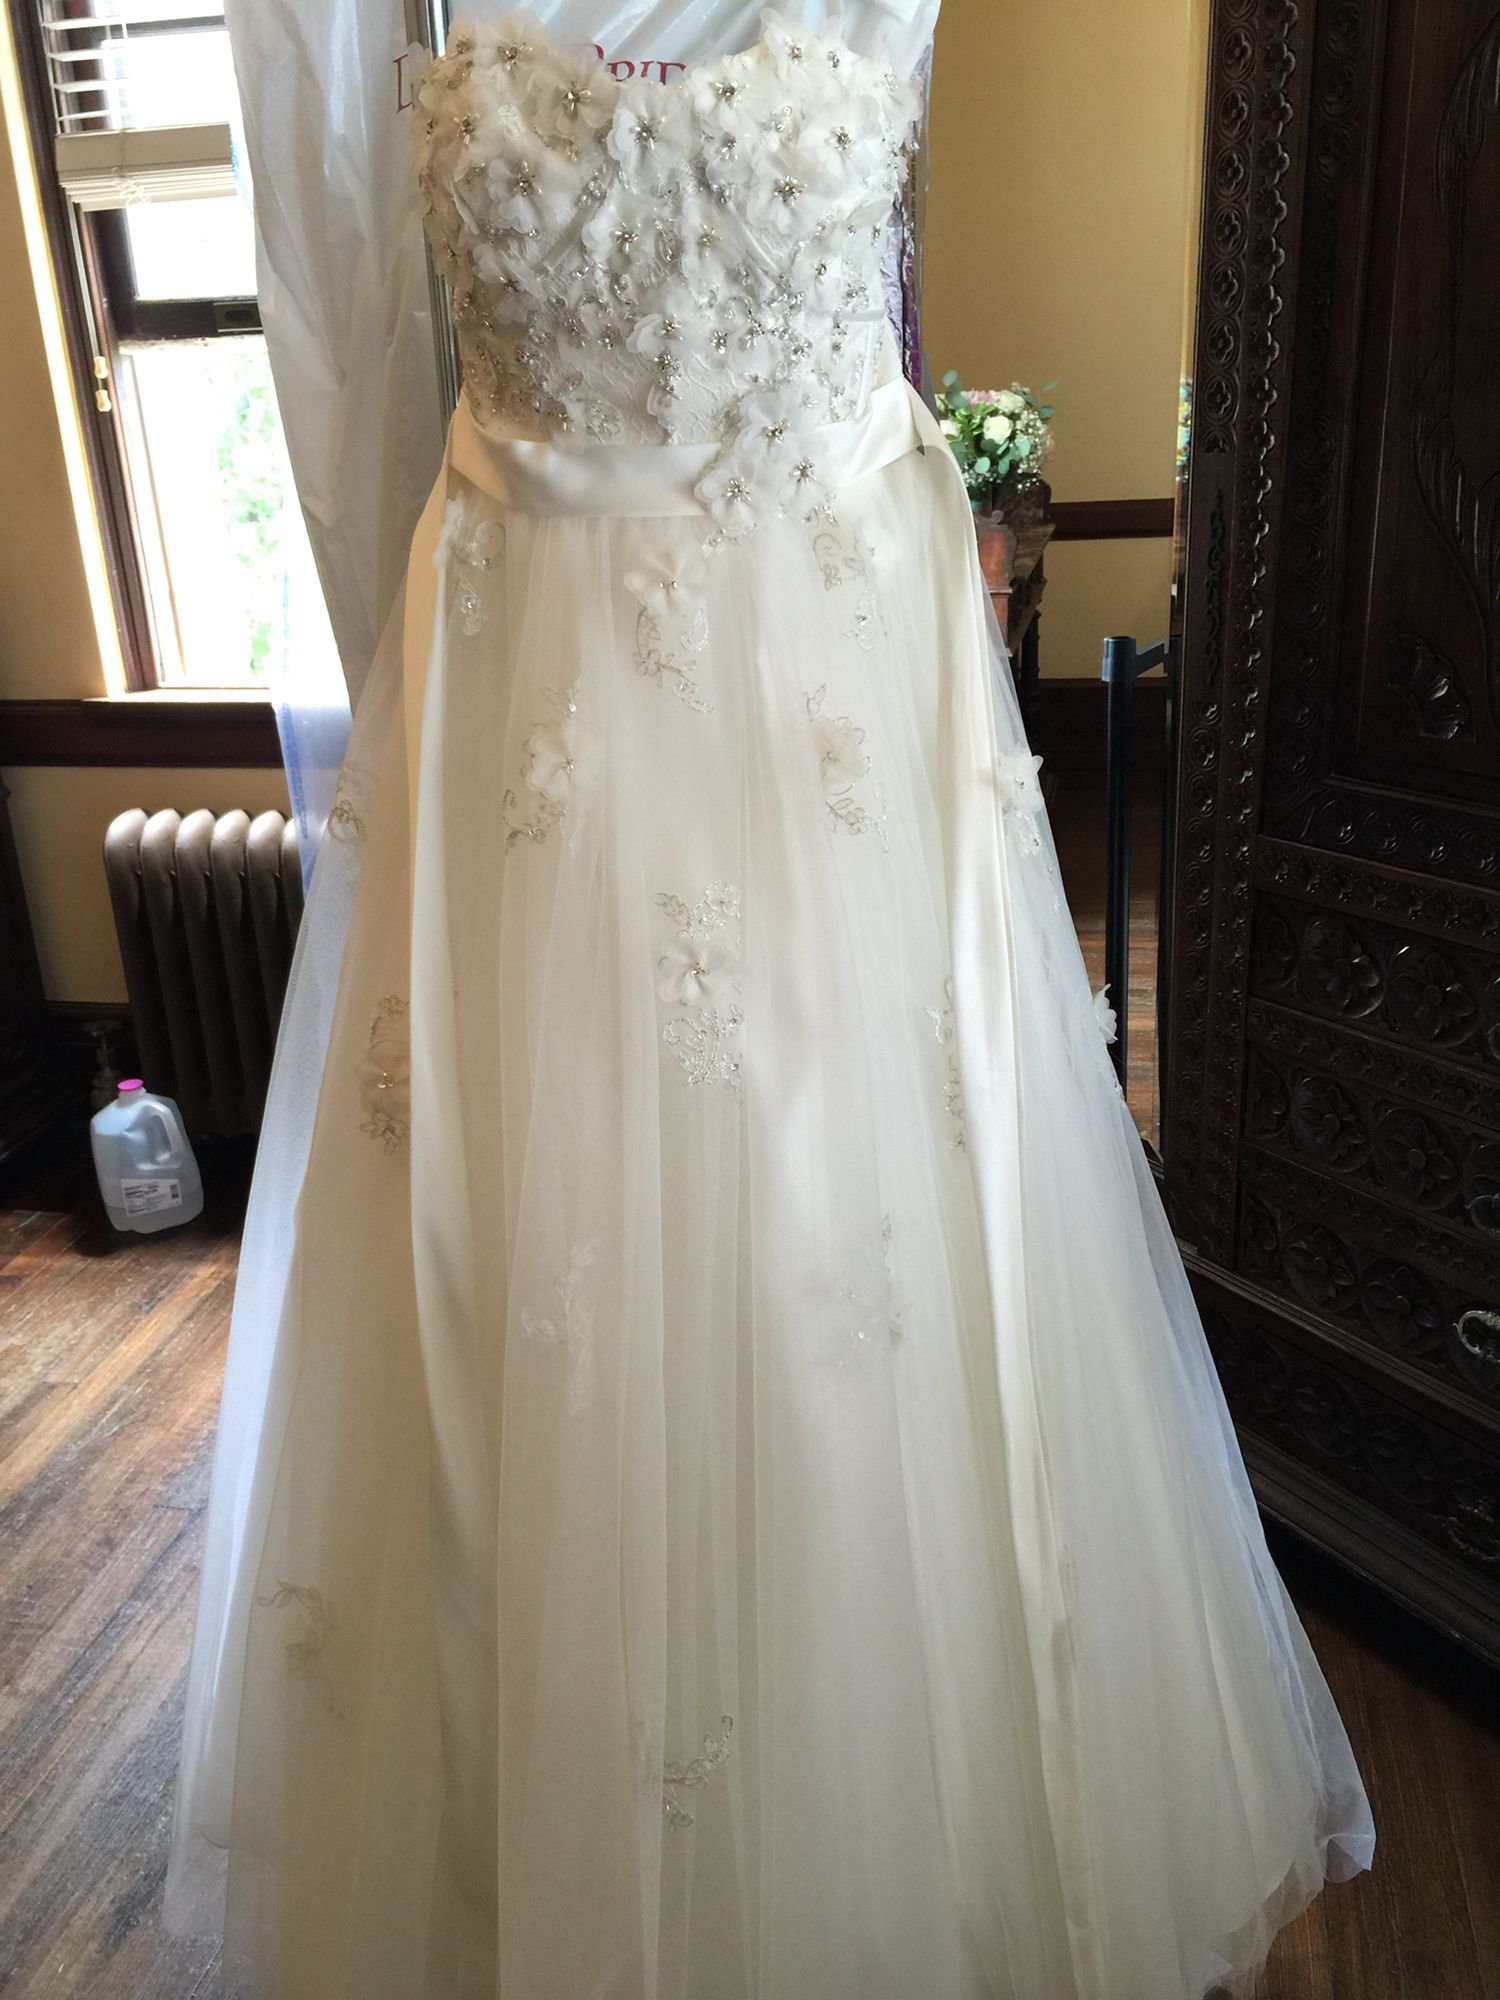 The Dress Snow White Style 207 From Disney Fairytale Wedding Collection At Alfred Angelo